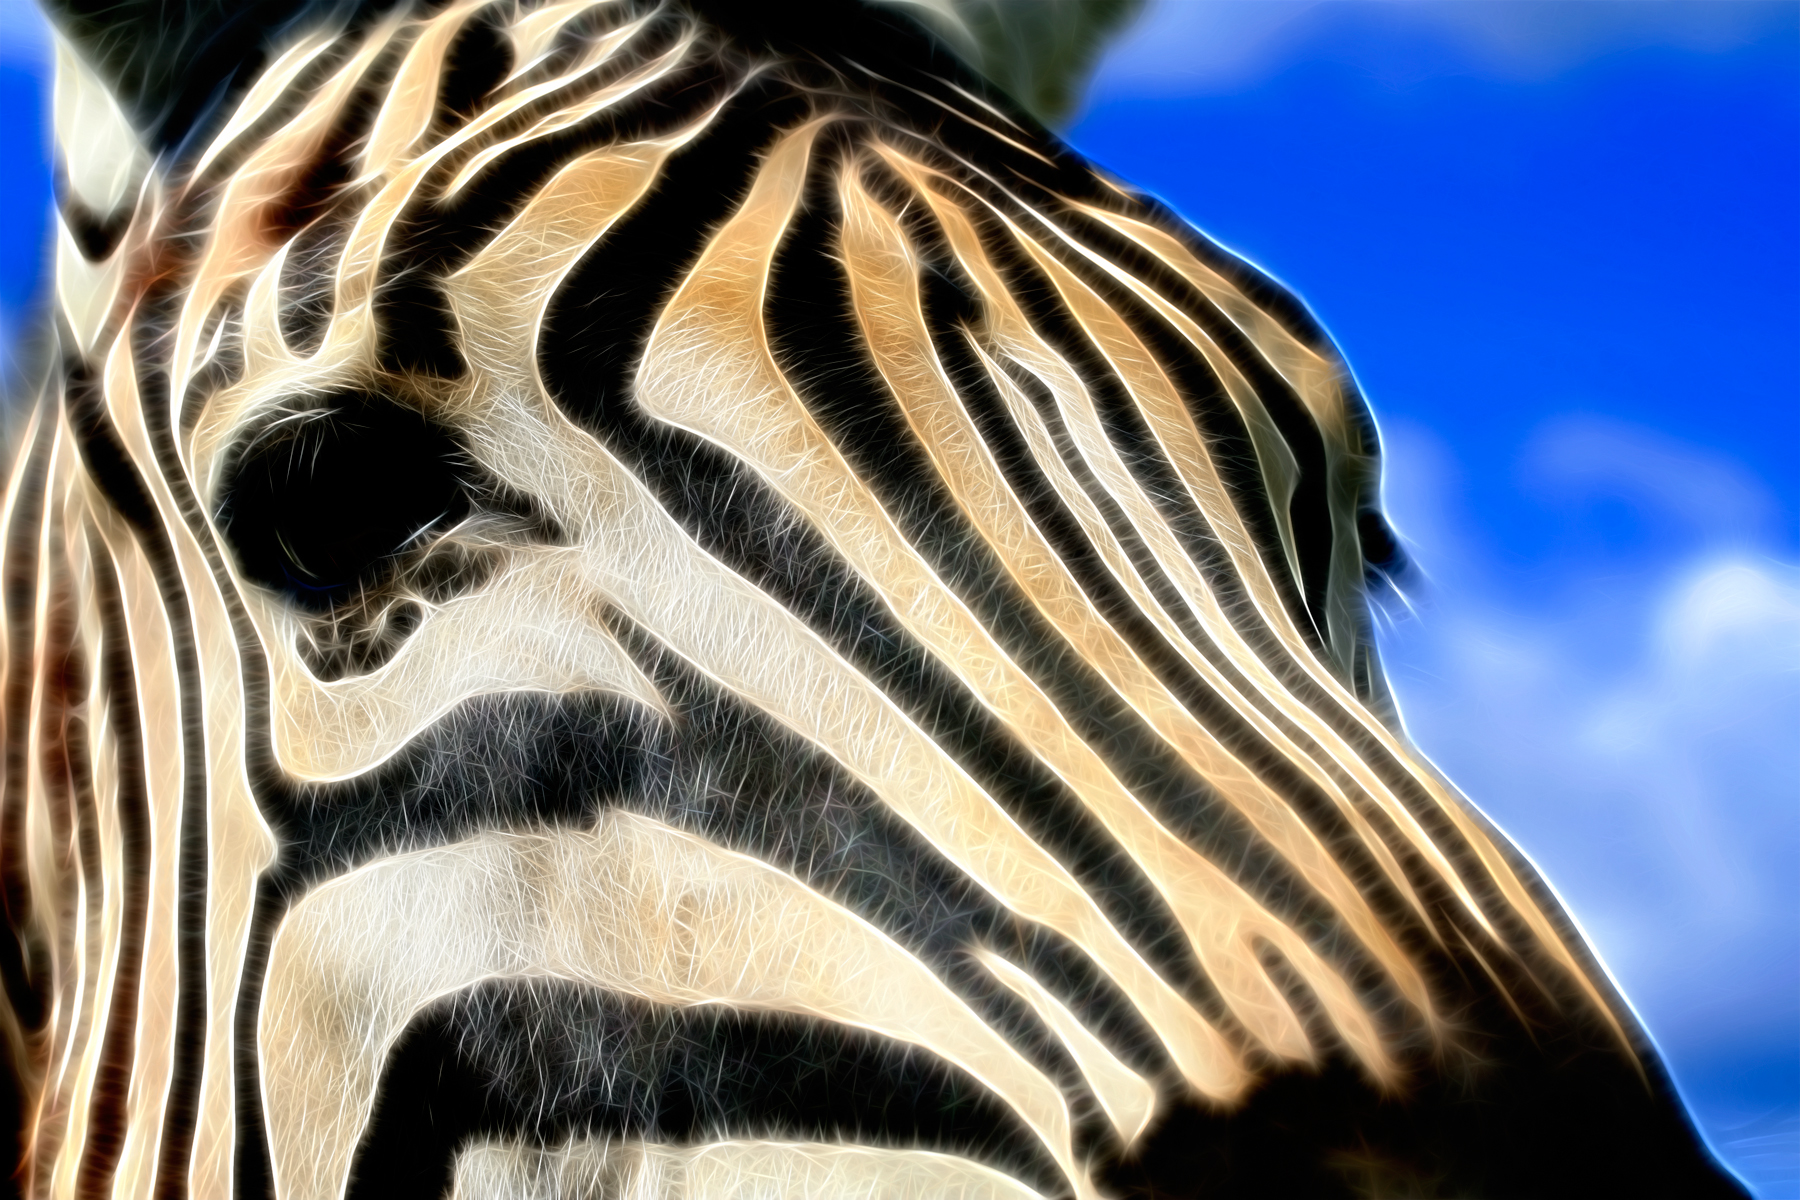 Zebra Profile Abstract, Abstract, Somadjinn, Manipulation, Natural, HQ Photo